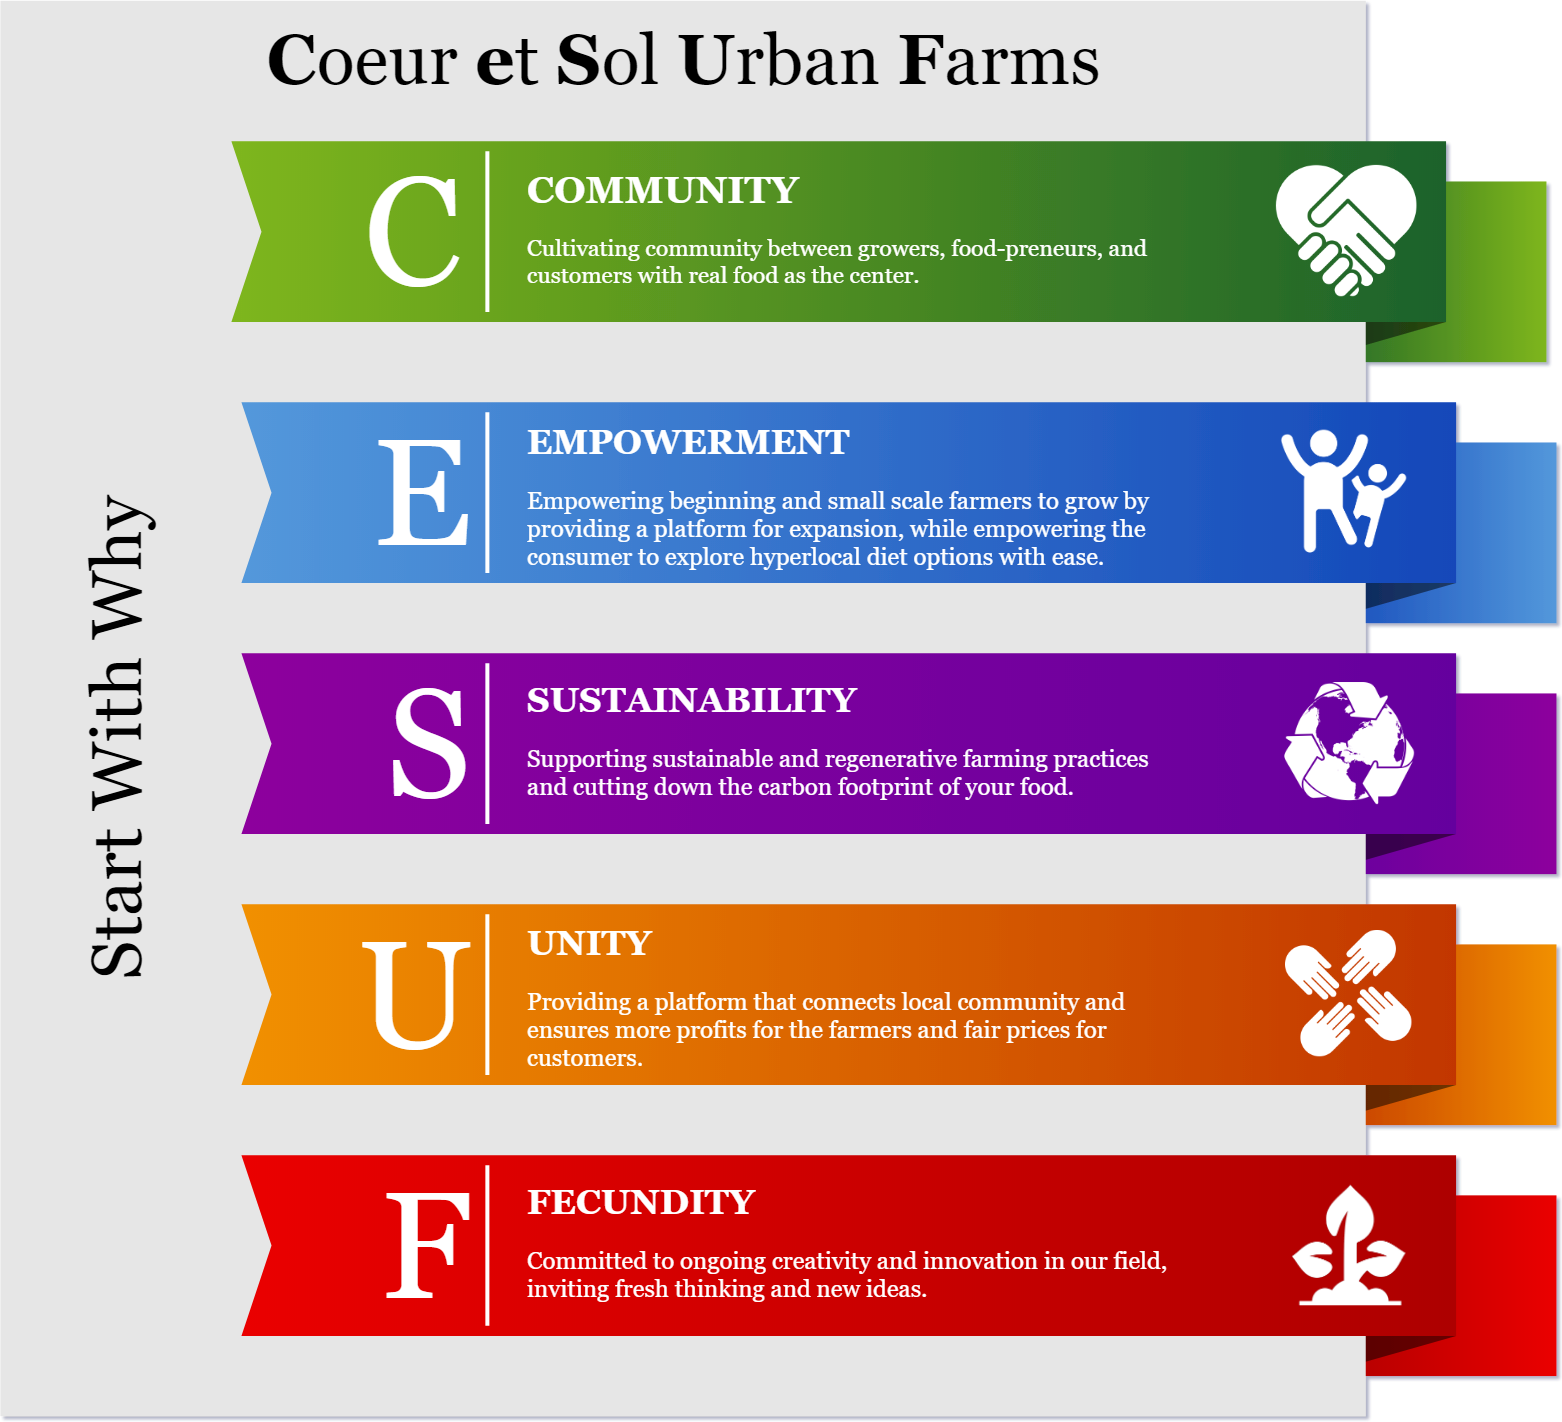 Starting with Why - When I started planning my urban farm business I recognized the importance of community. Urban farming felt uniquely isolating, and I learned quickly that many other young farmers share the same sentiment. Whether urban, suburban or rural the need for a supportive agri-business community in Northern New Jersey proved to be a gap and I quickly became interested in building bridges.Many producers that I have connected with in this first year of farming have expressed some level of struggle with accessing consistent and sustainable market channels. My desire for community among these amazingly passionate, small-scale farmers lead me to develop this concept for a collaborative approach. The result is creating accessible food channels directly to consumer (You!) punctuated by the overall desire to maximize profits for the growers and makers themselves.